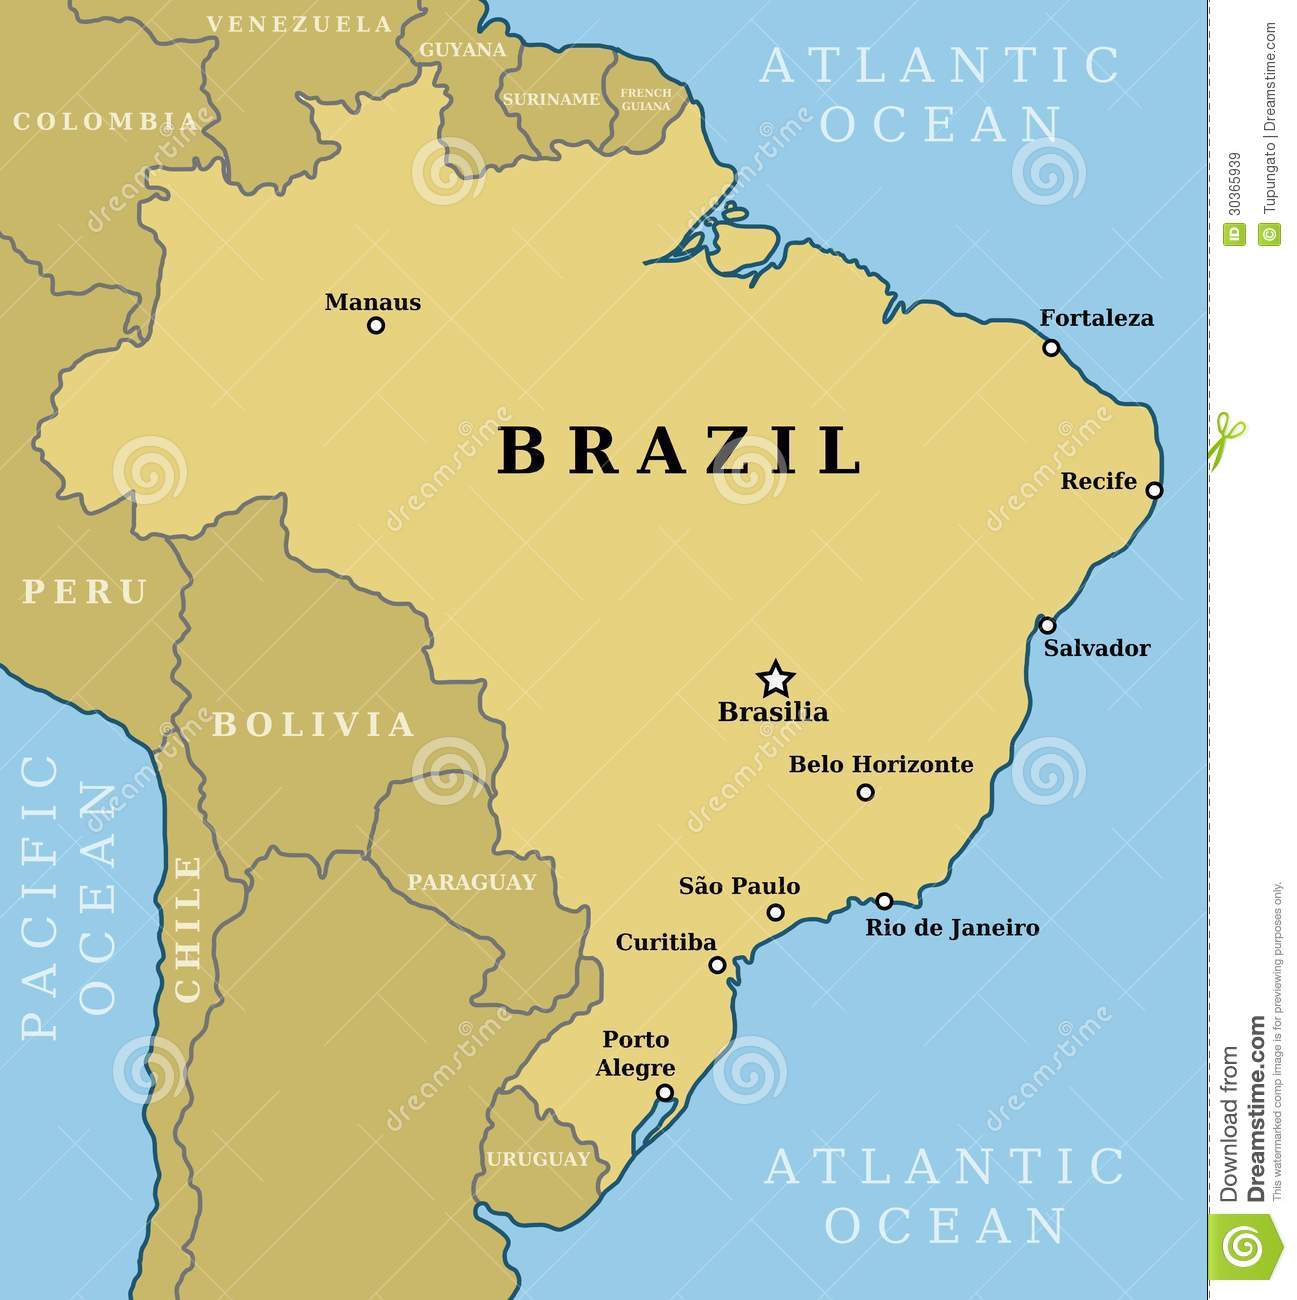 Map of Brazil. Country outline with 10 largest cities including